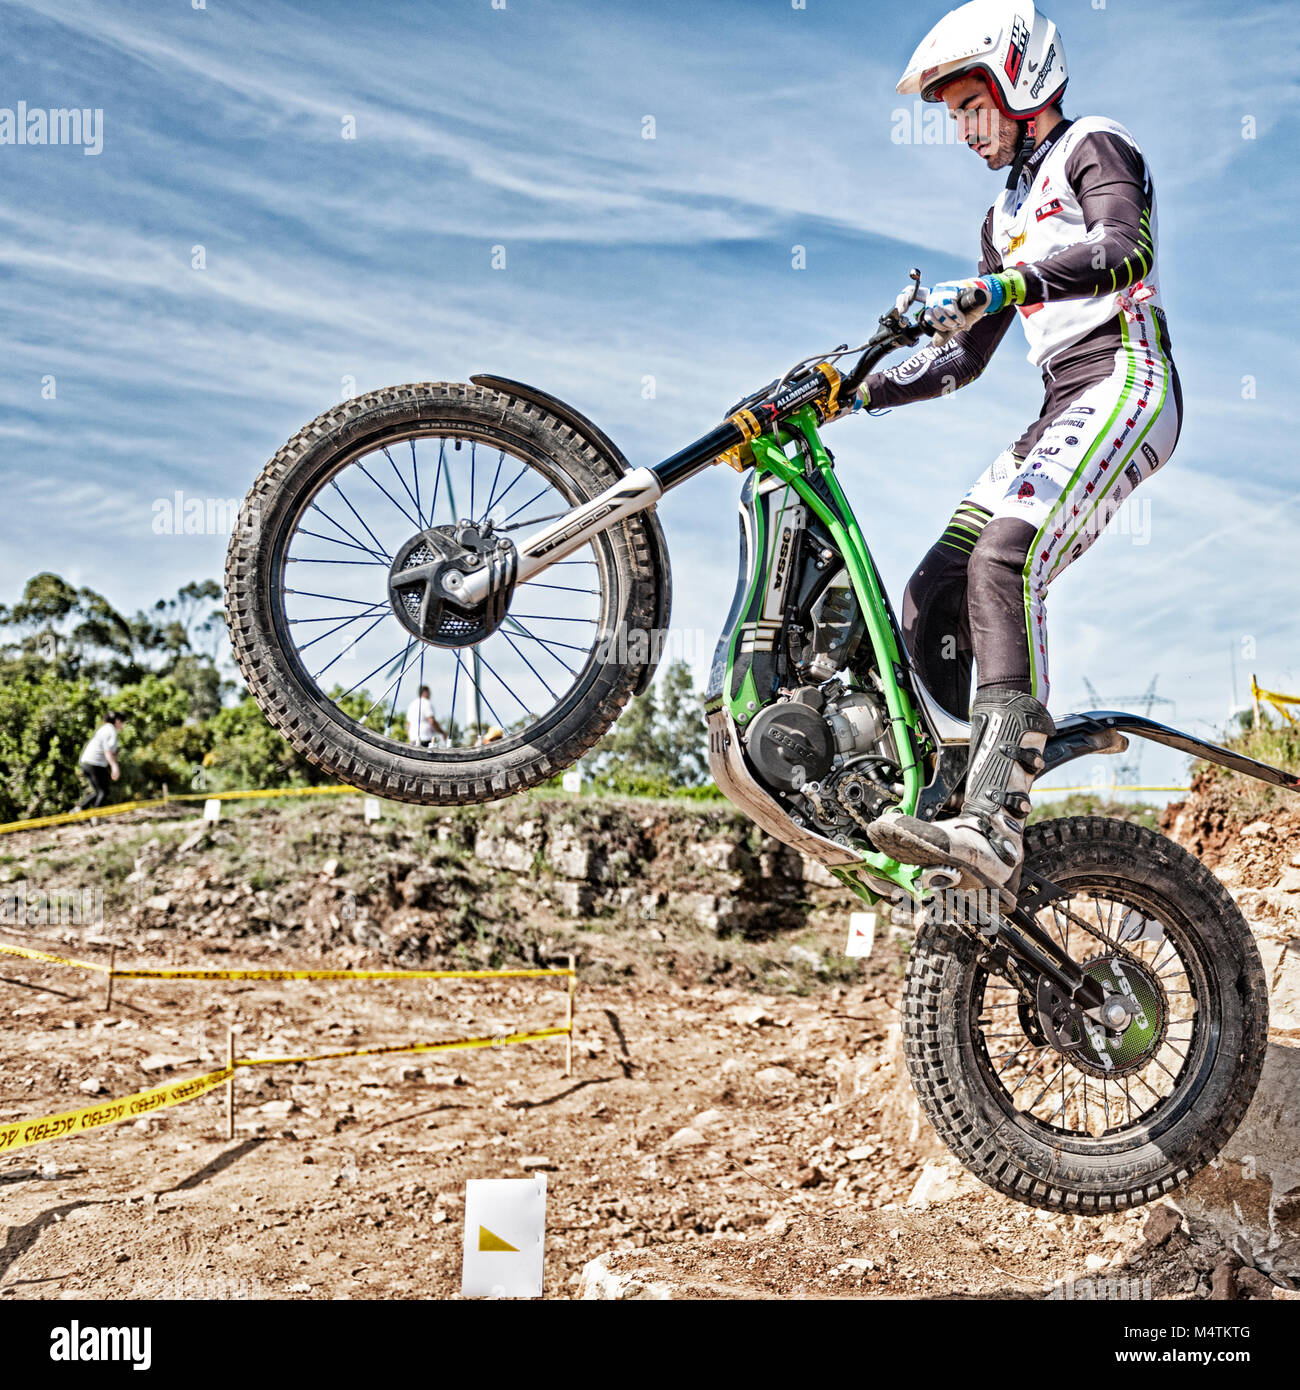 Trials motorbike rider takes to the air during the Portugal National Championships in Torres Vedras, Portugal. - Stock Image